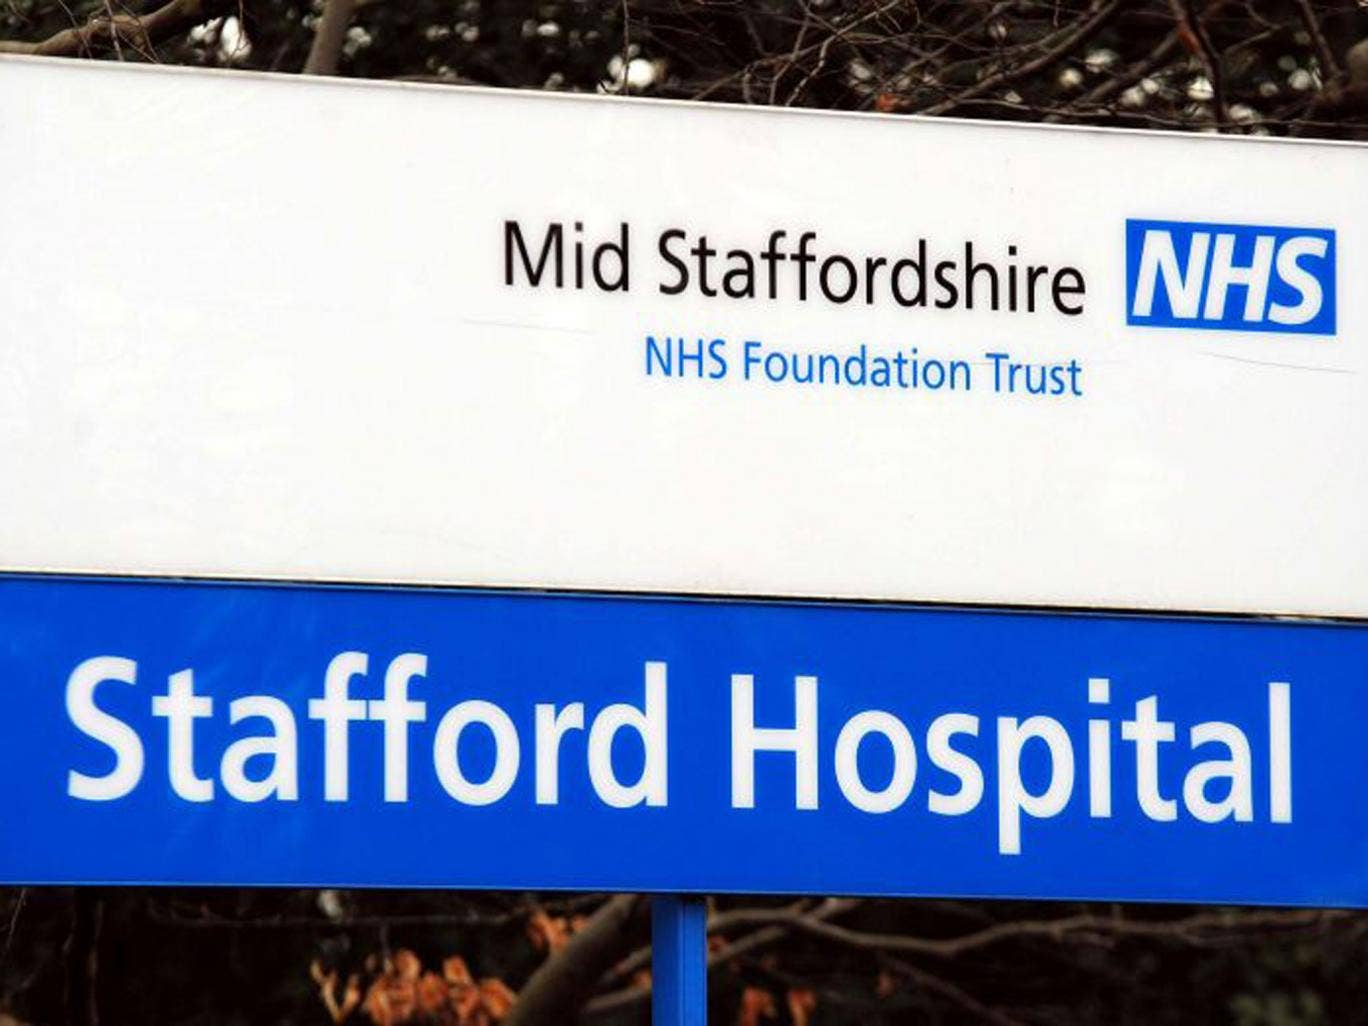 The NHS is at risk of further scandals similar to that at Mid-Staffordshire unless the Government fully implements the recommendations of the Francis Inquiry